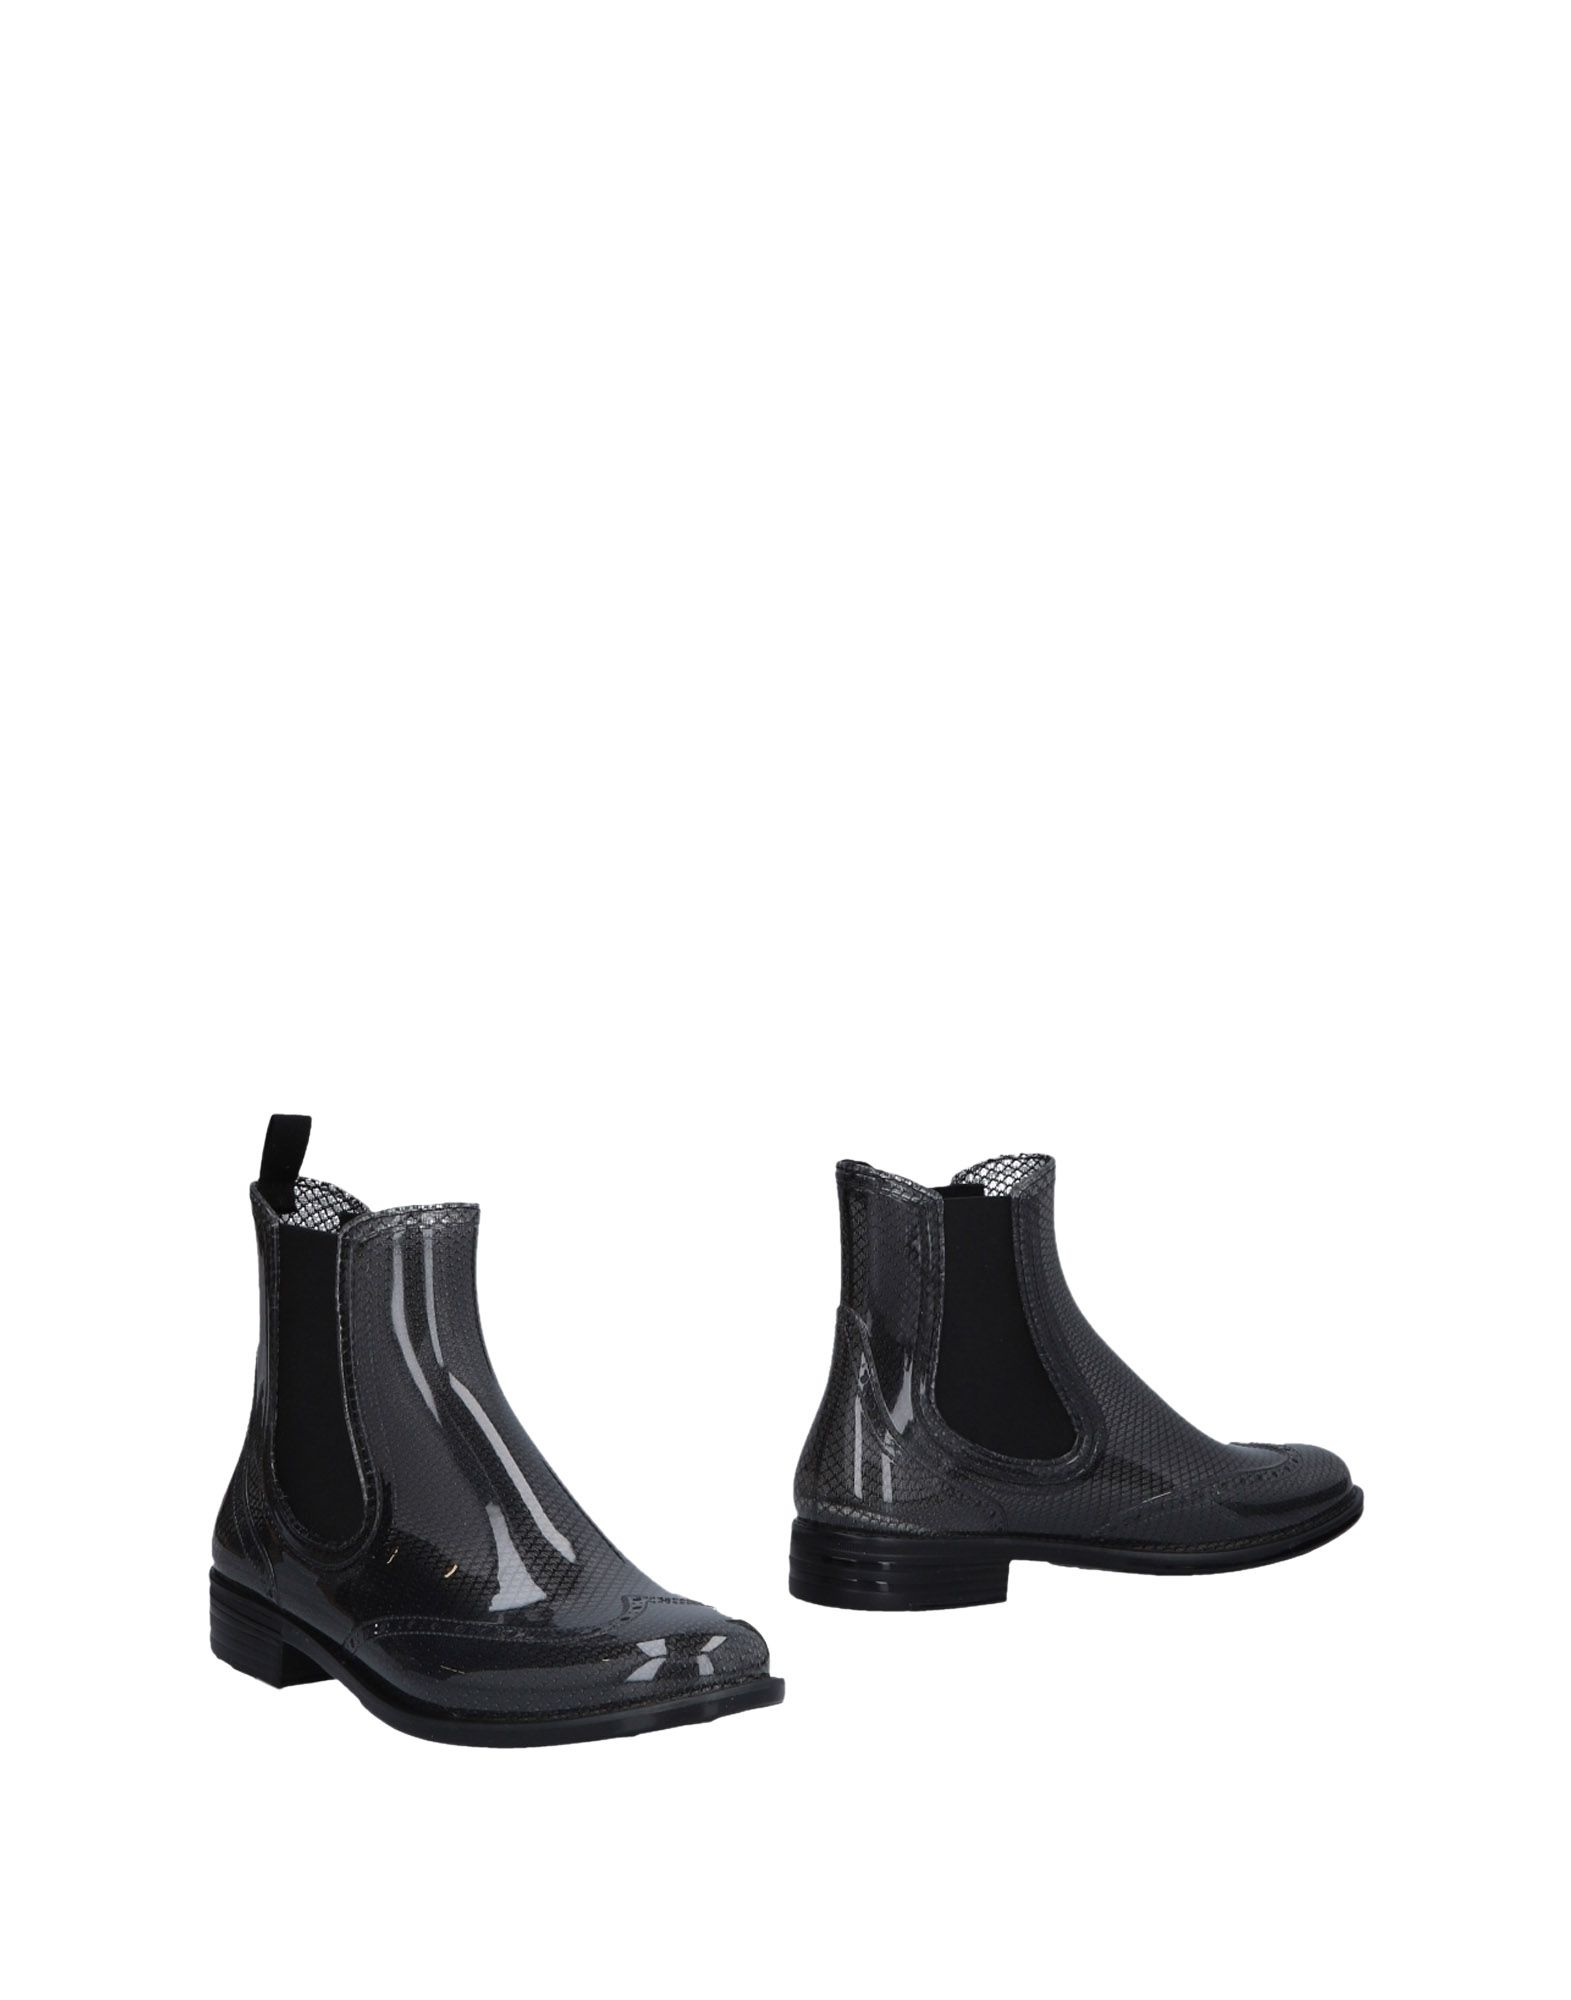 Chelsea Boots Police 883 Donna - 11477260WK